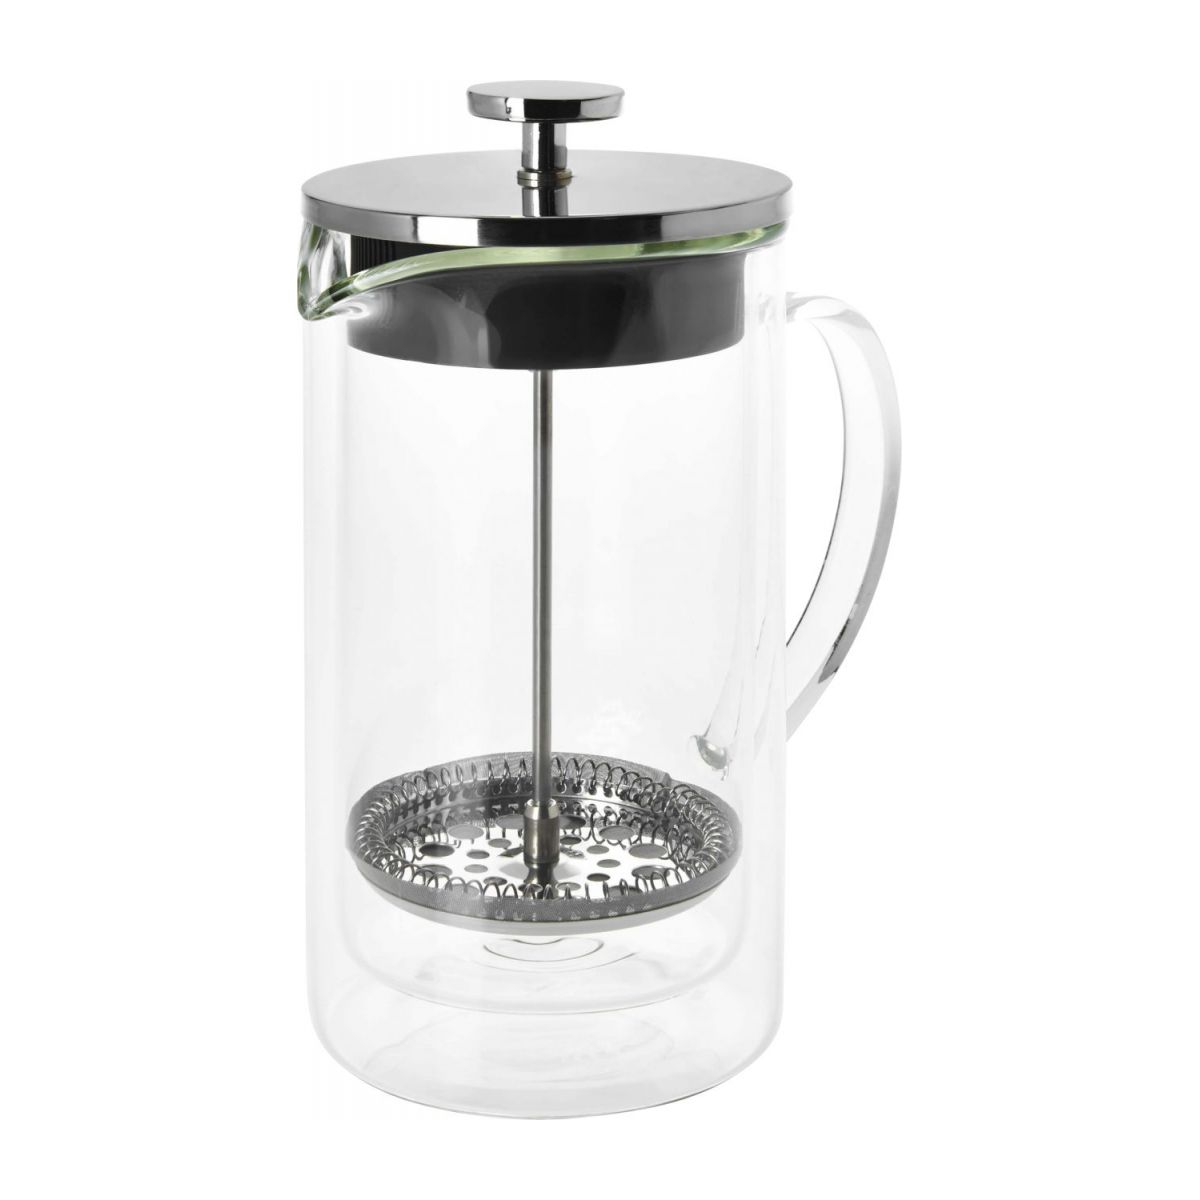 800ml French press coffee maker n°1